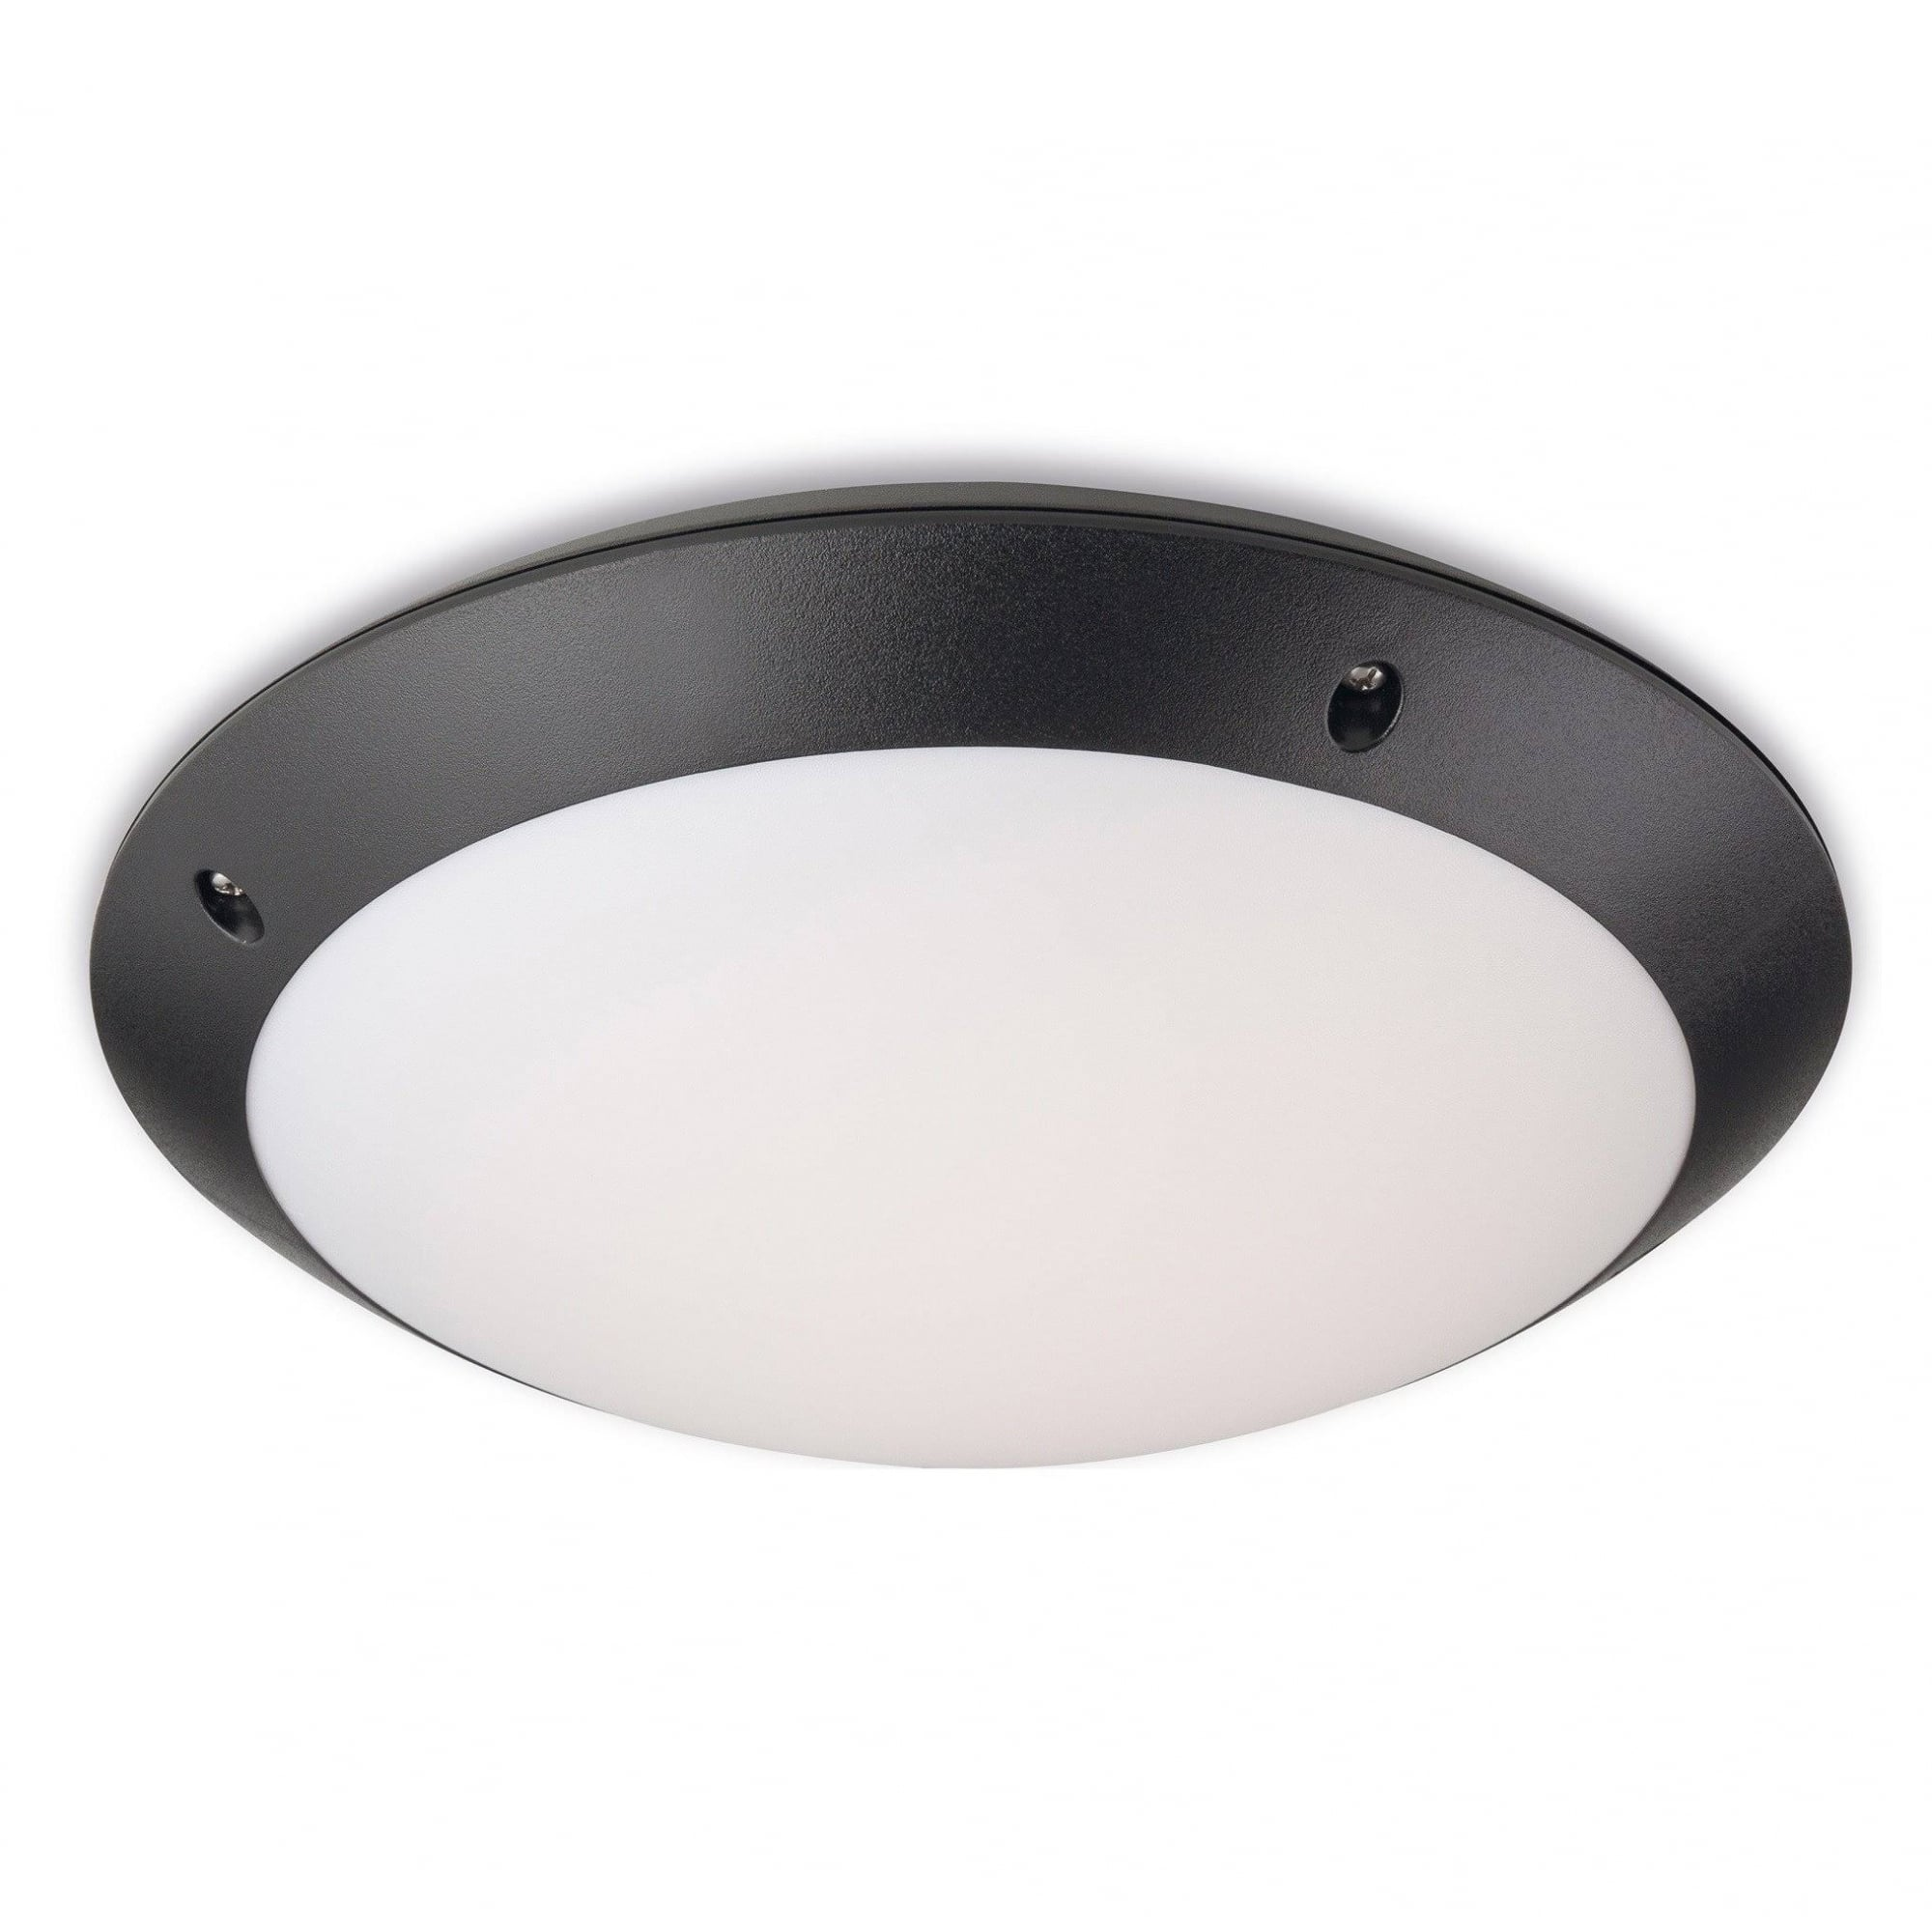 Firstlight Nevada Outdoor Led Motion Sensor Flush Ceiling Light In Black Finish Ip66 2344 Lighting From The Home Lighting Centre Uk